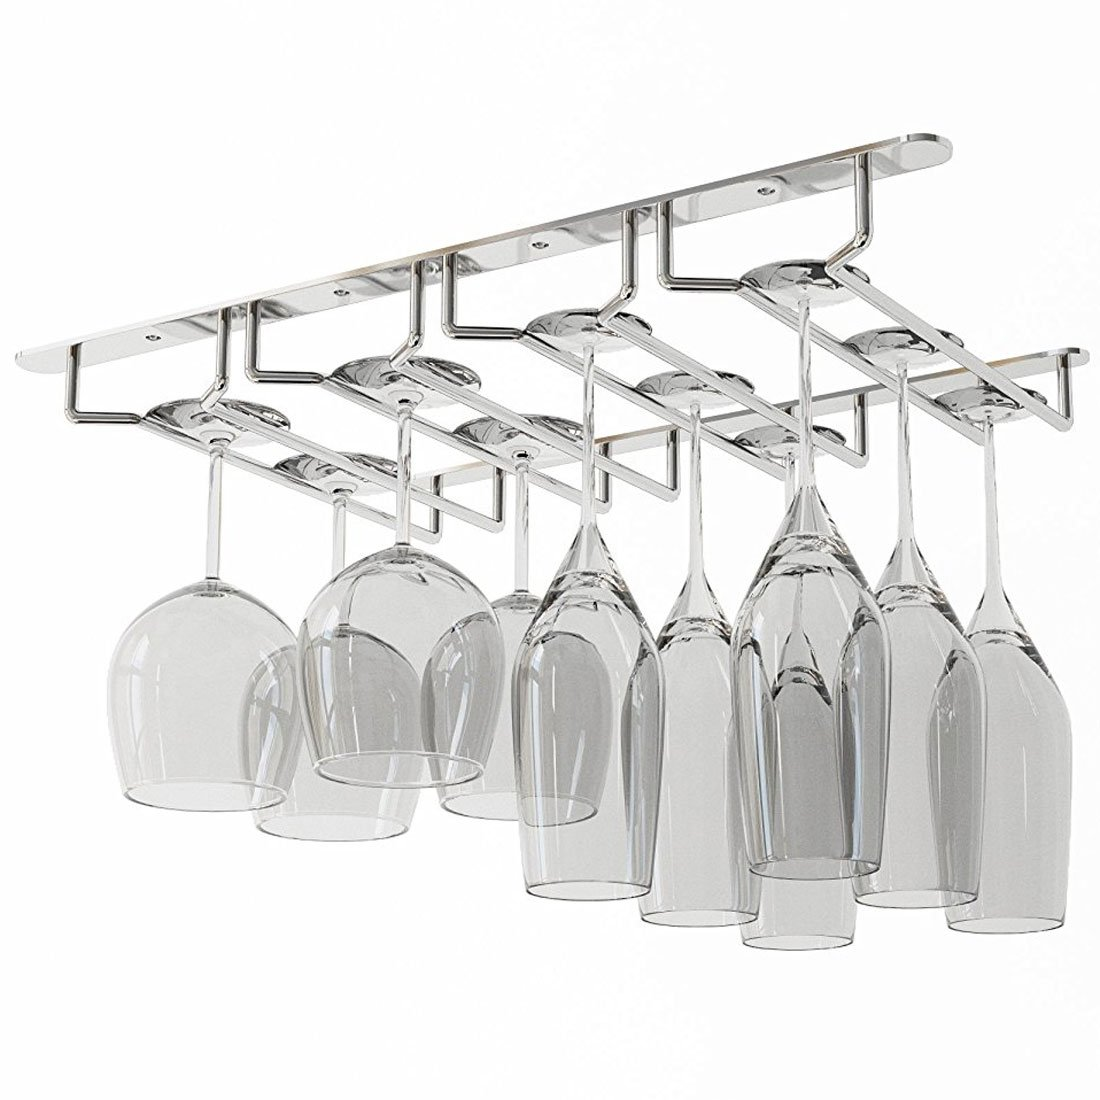 Wallniture Under Cabinet Stemware Glass Storage Rack Chrome Finish 17 3/4 by Wallniture (Image #1)